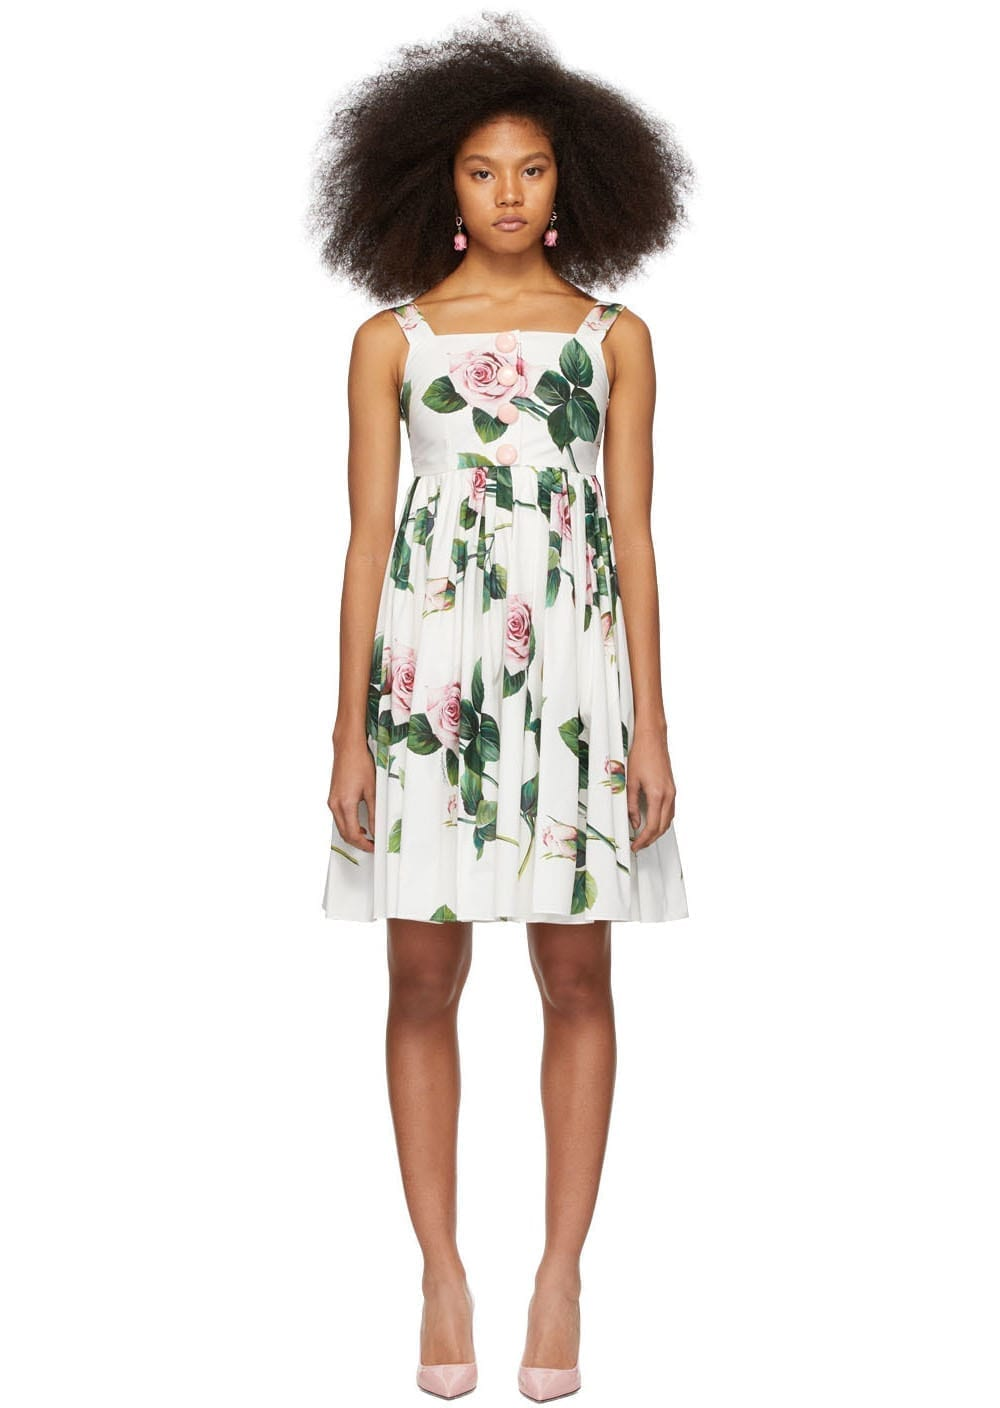 DOLCE & GABBANA Multicolor Tropical Rose Print Dress